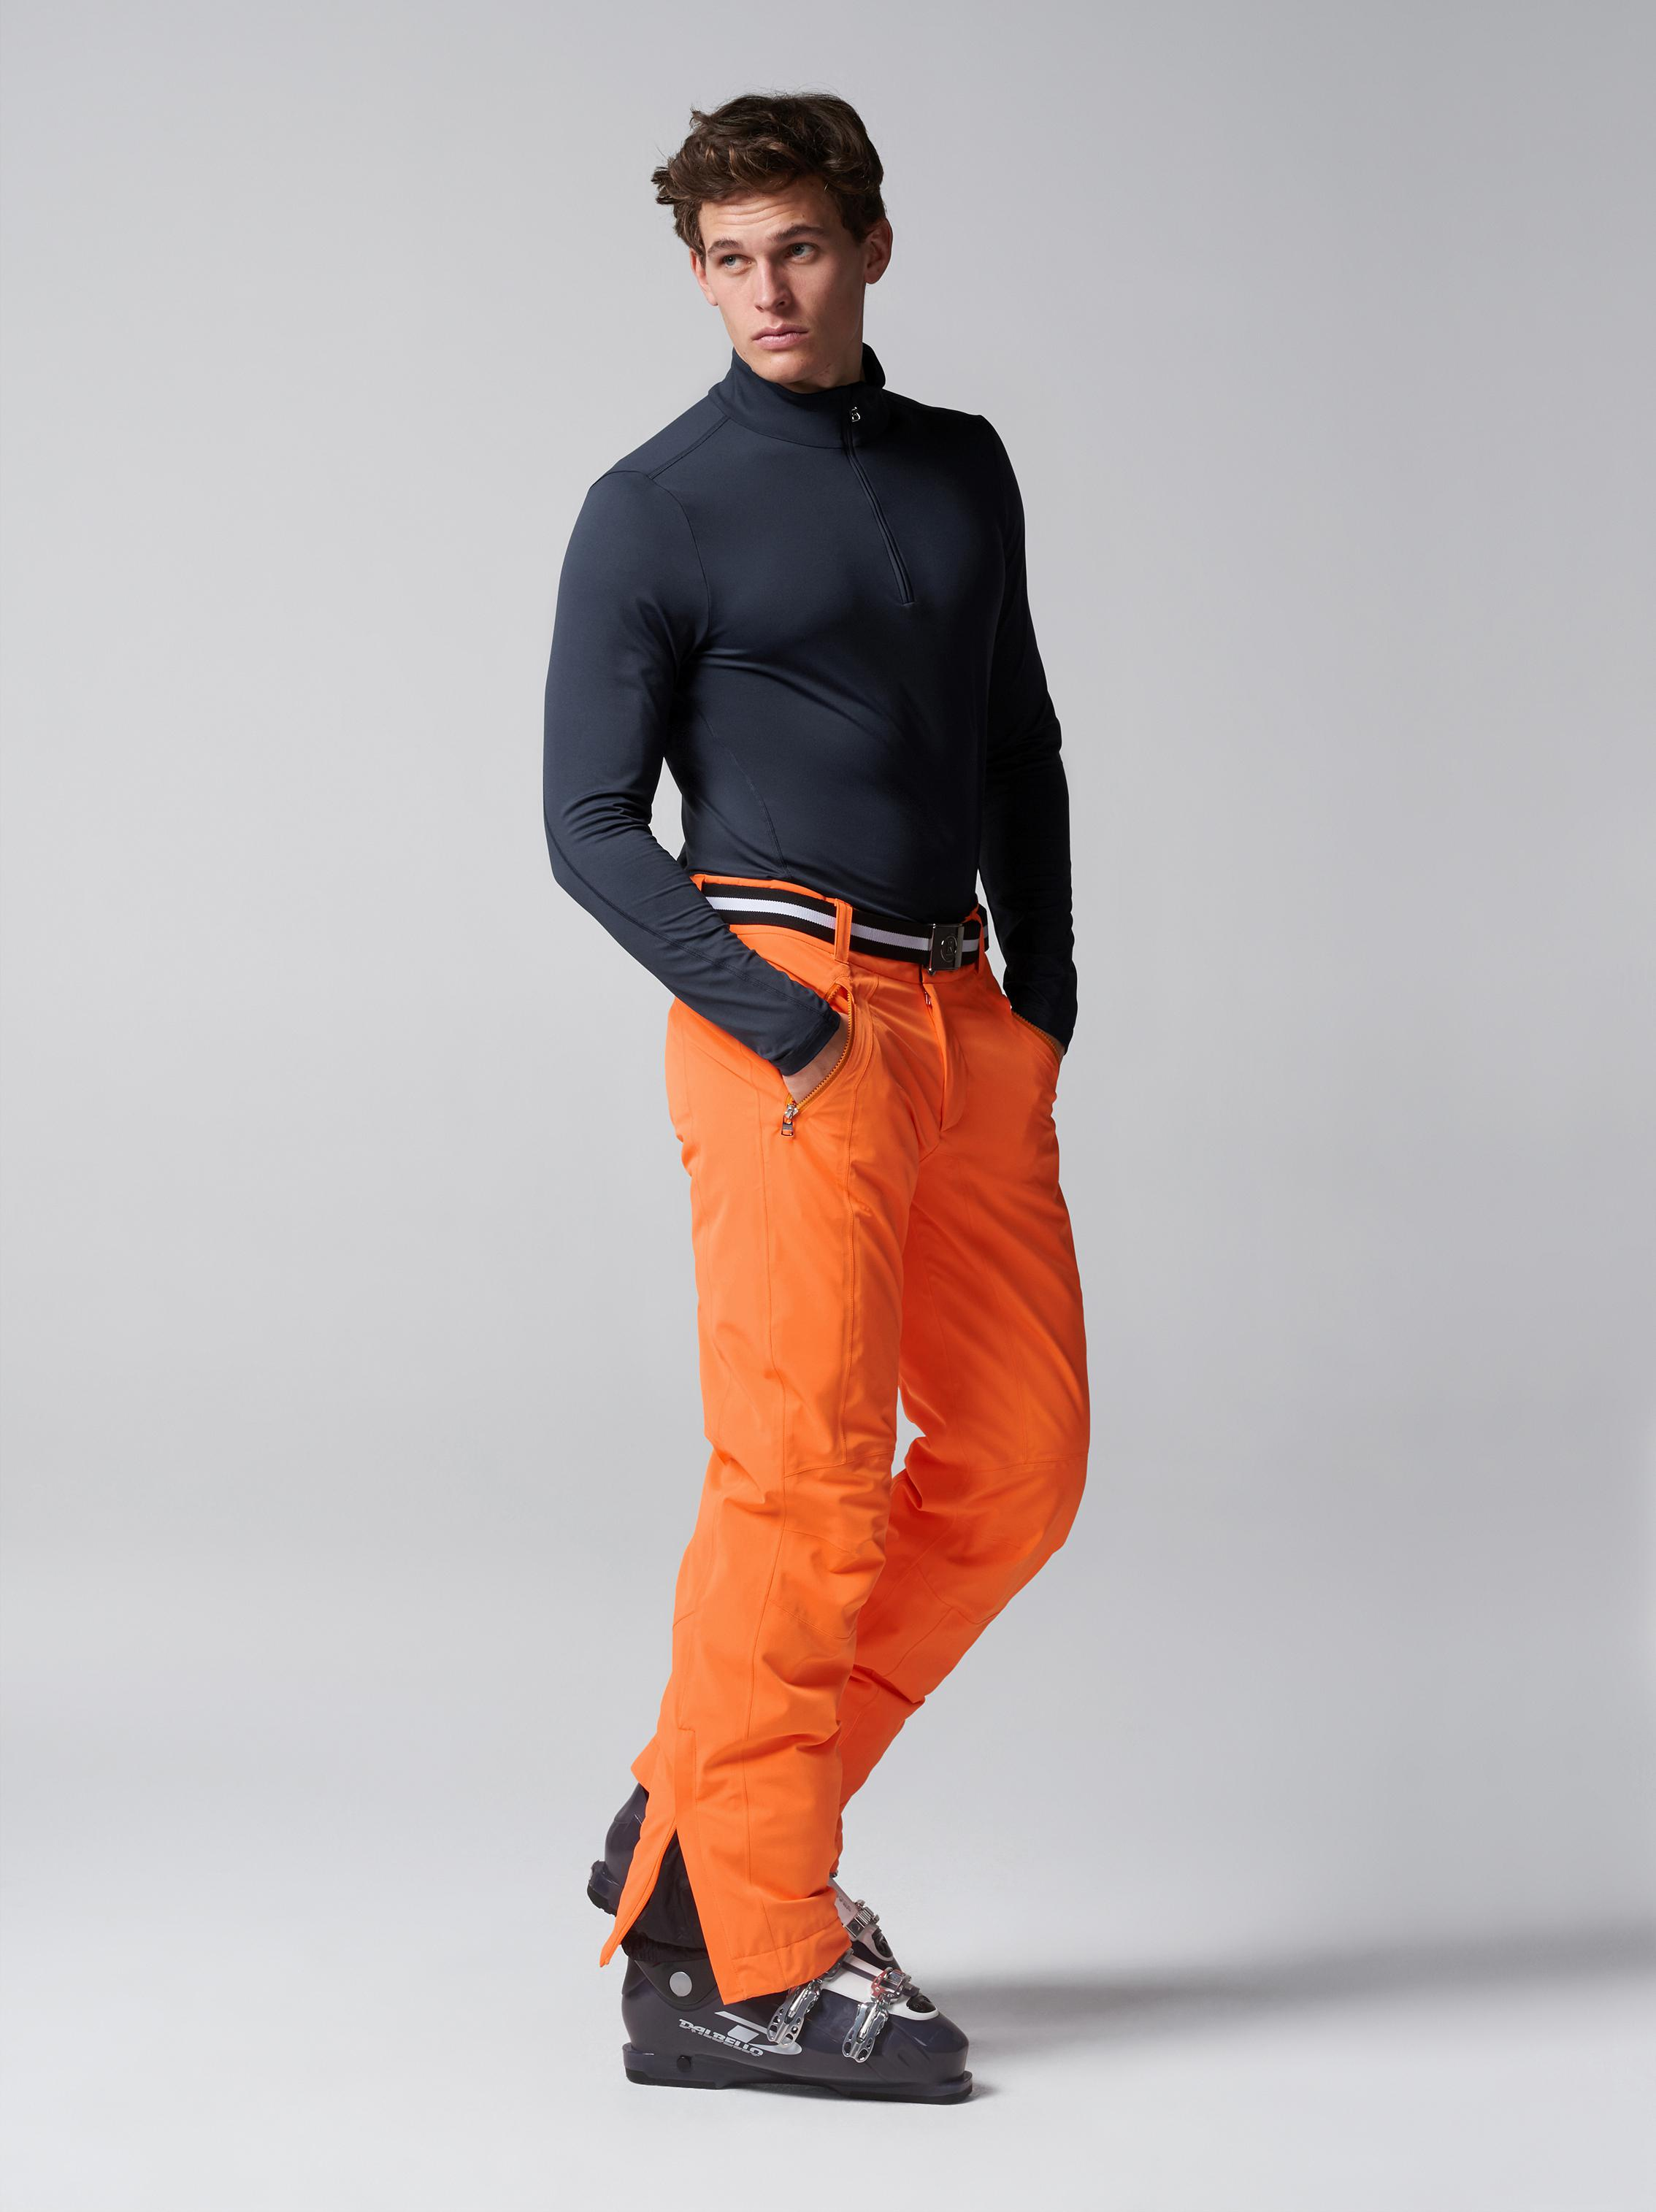 Find Orange Pants, Plus Size Orange Pants, Skinny Orange Pants and more, available at Macy's. Macy's Presents: The Edit - A curated mix of fashion and inspiration Check It Out Free Shipping with $49 purchase + Free Store Pickup.